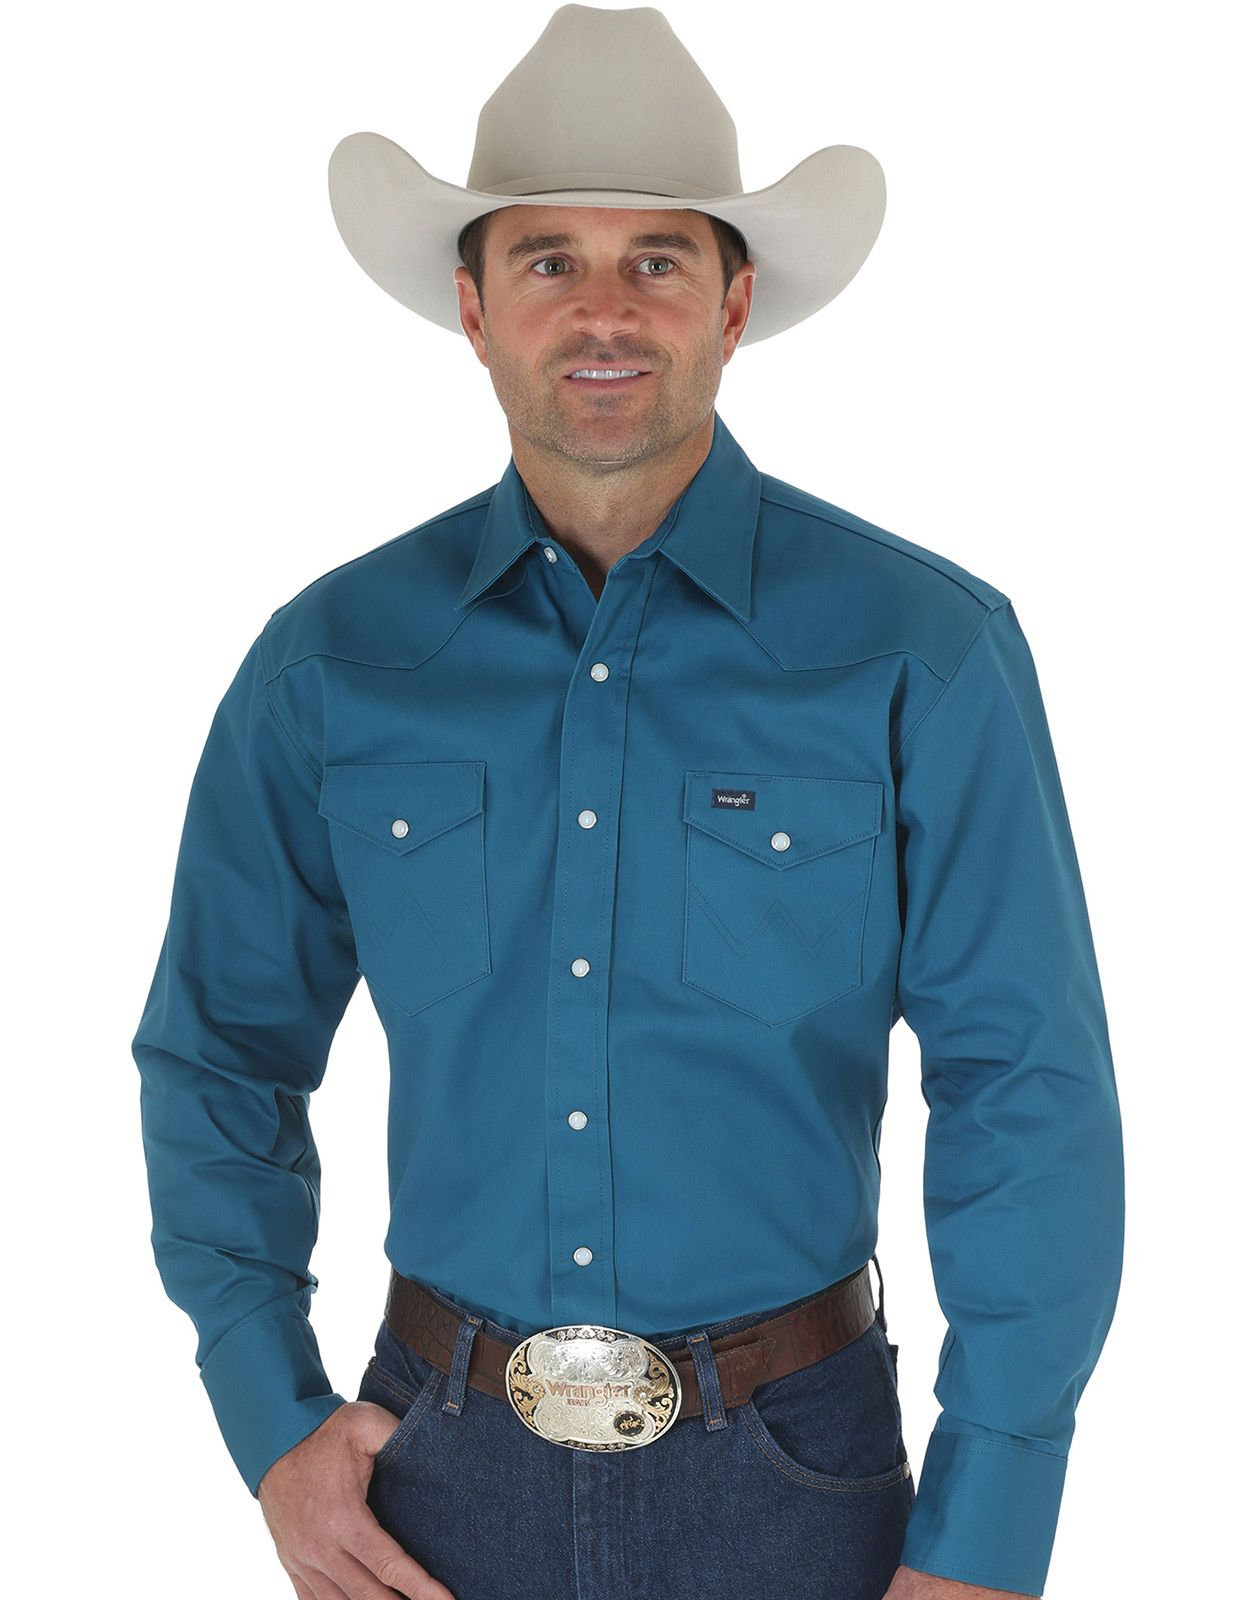 Wrangler Men's Classic Fit Firm Finish Long Sleeve Solid Snap Work Shirt - Dark Teal